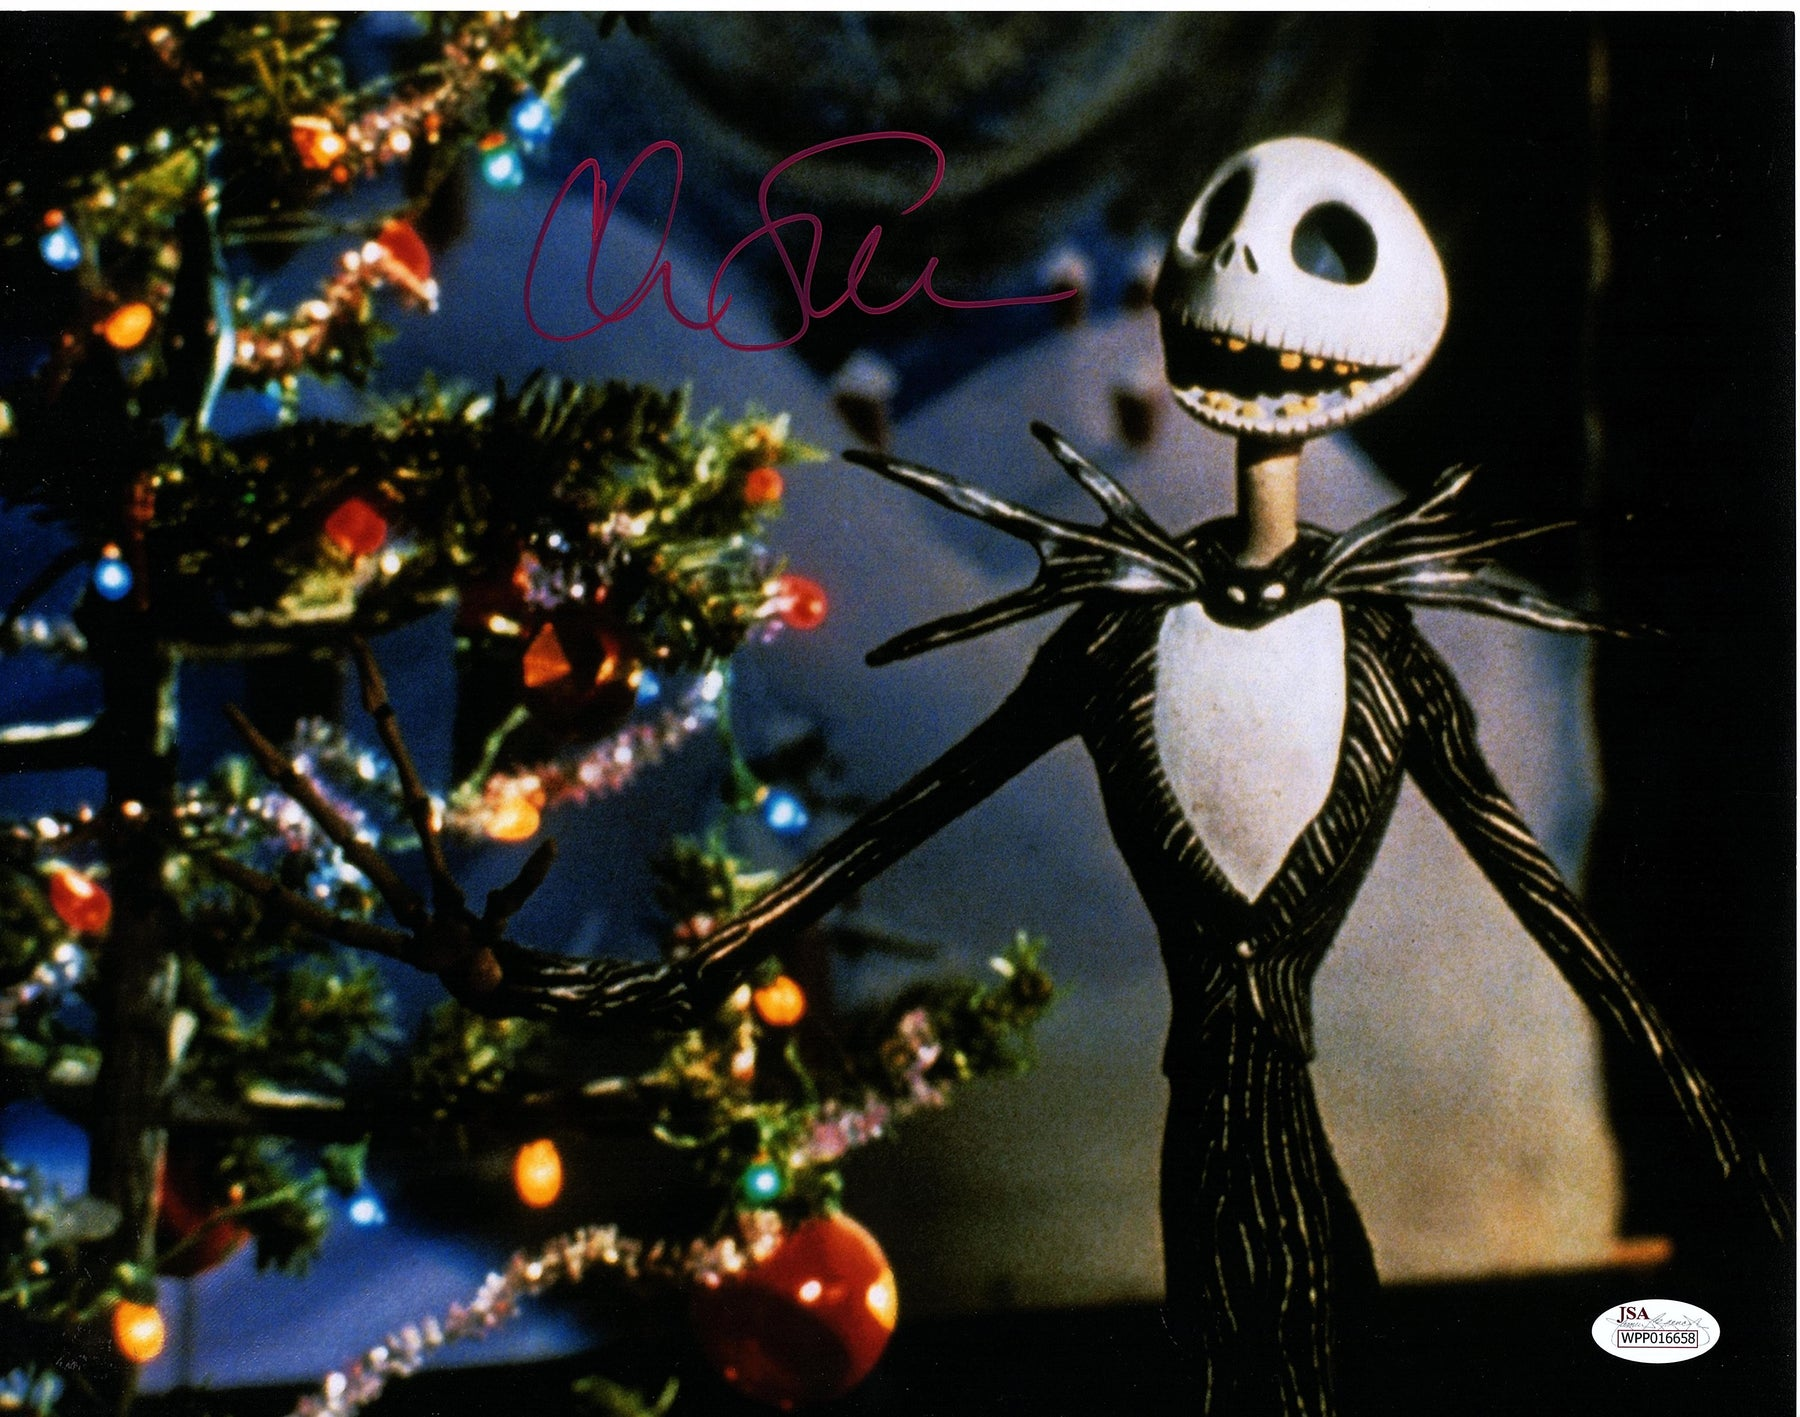 Chris Sarandon Signed 11x14 Photo Nightmare Before Christmas Jack JSA COA Z5